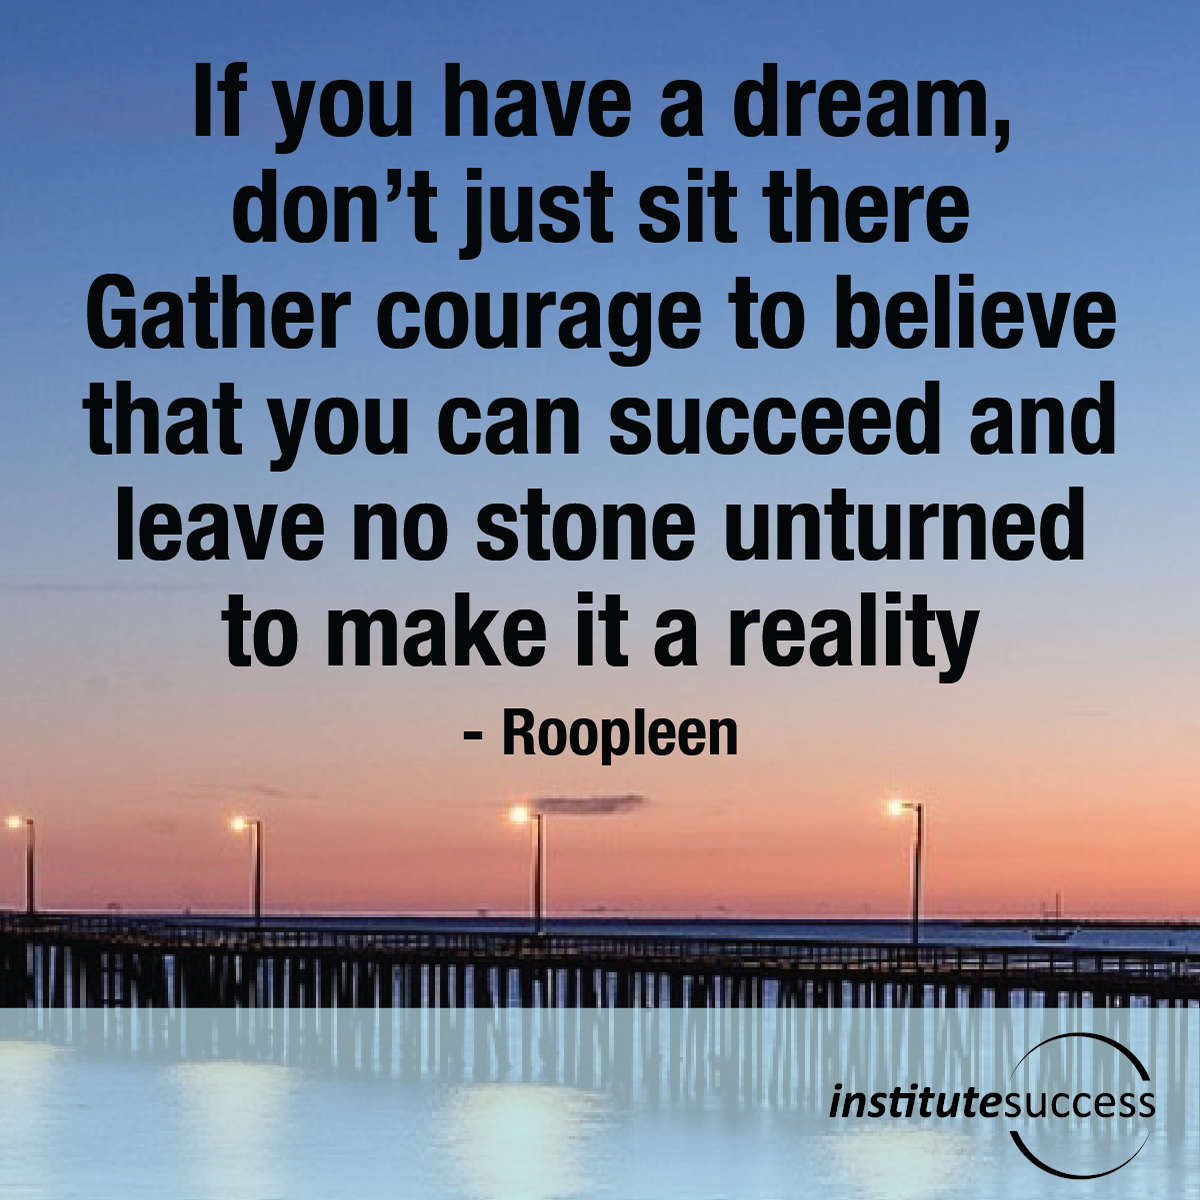 If you have a dream, don't just sit there. Gather courage to believe that you can succeed and leave no stone unturned to make it a reality – Roopleen